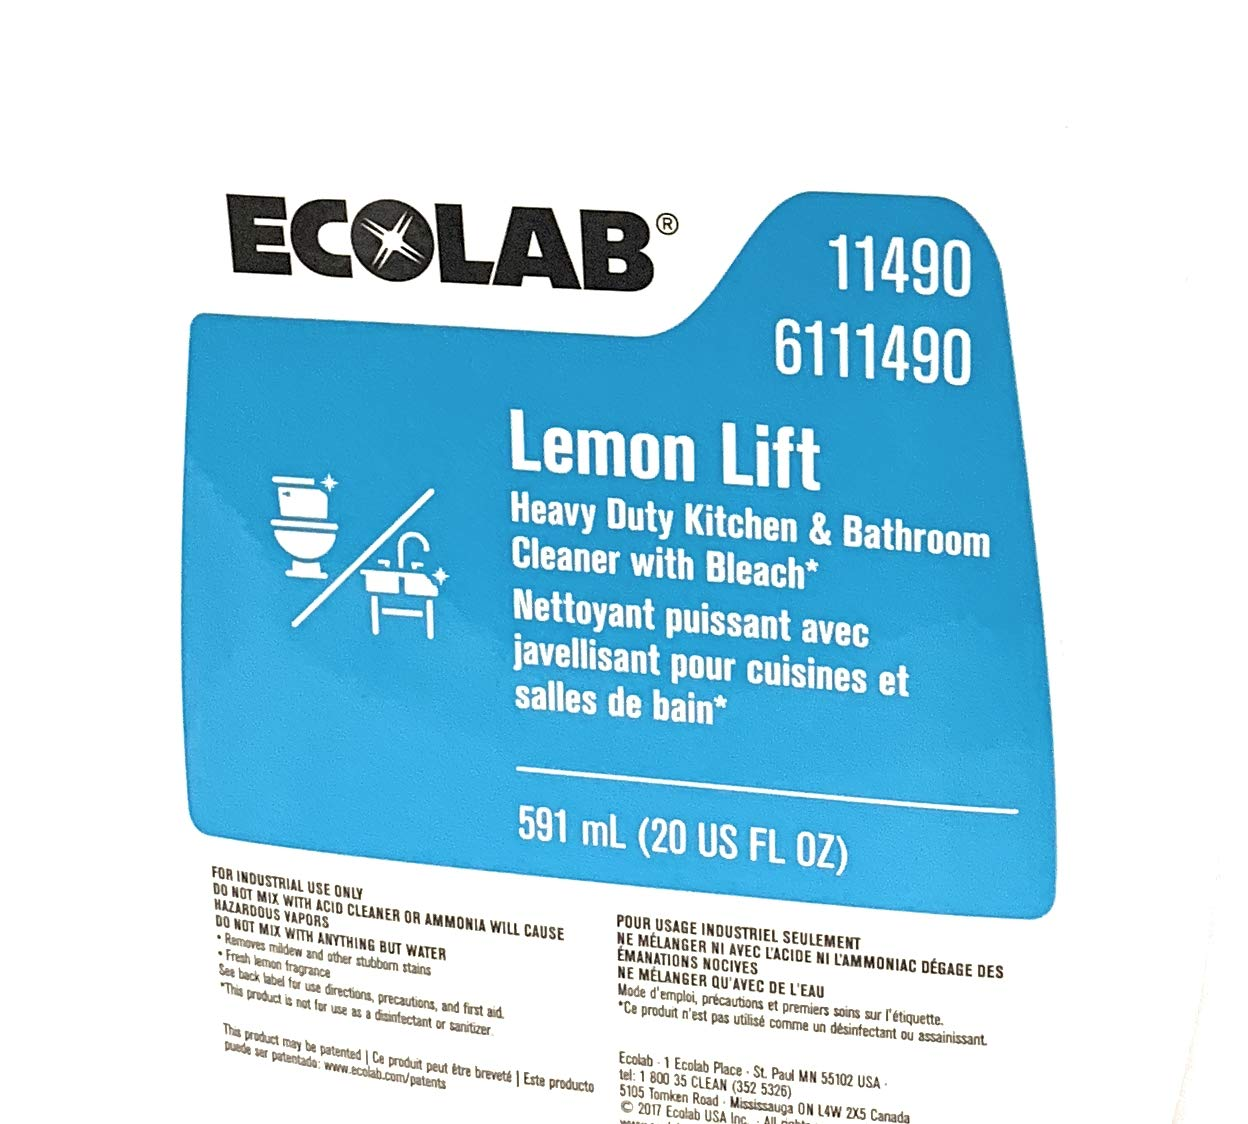 Ecolab Lemon Lift Heavy Duty Kitchen & Bathroom Cleaner with Bleach- 20 FL OZ